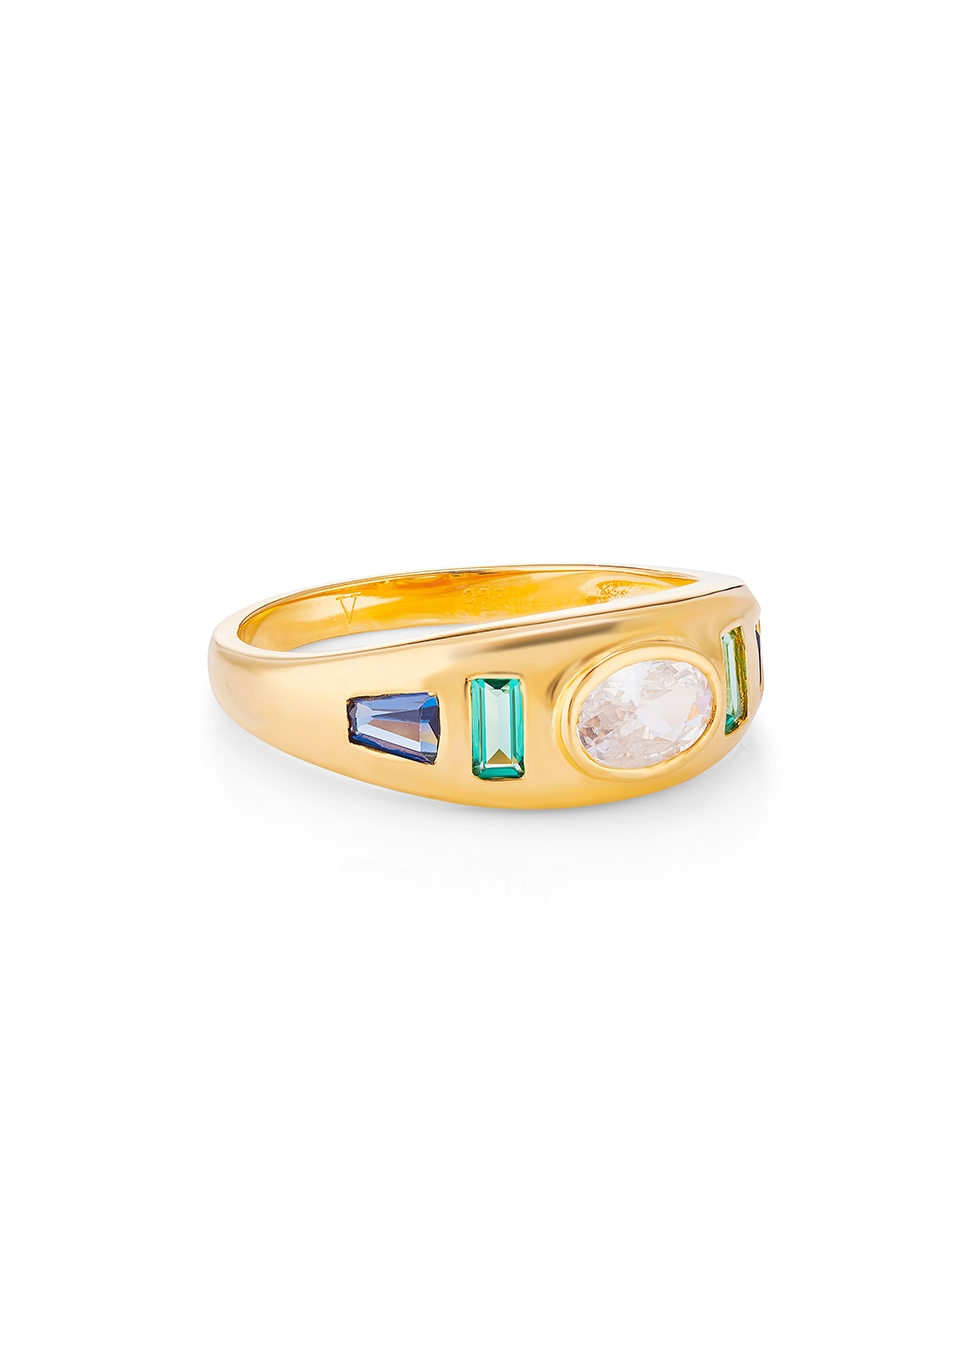 Sara Gypsy 18kt gold-plated ring